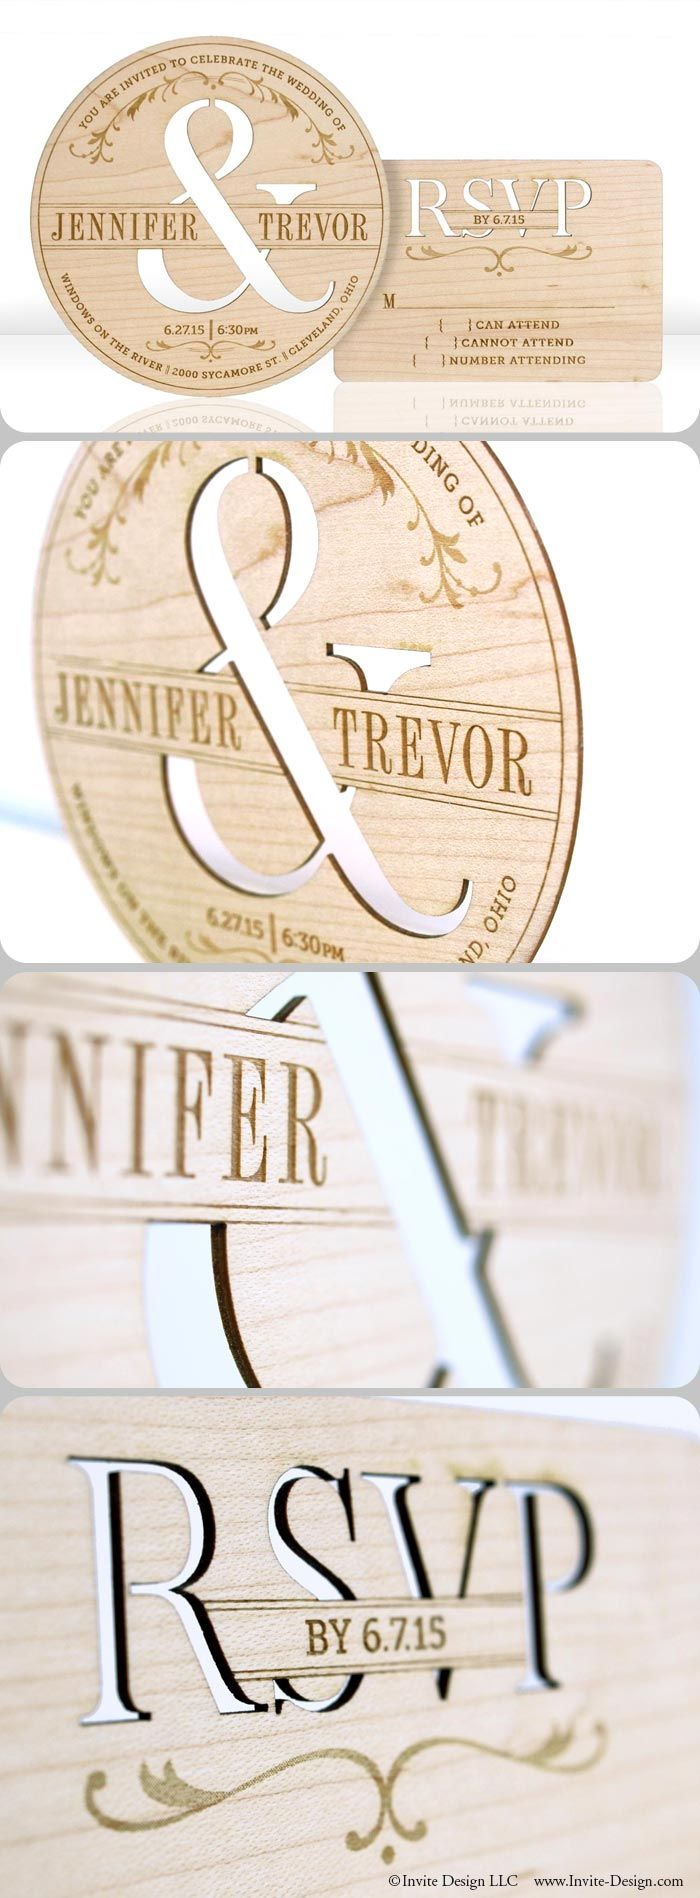 "TYPOGRAPHY :: Laser cut wood wedding invitations. These contemporary, typography-inspired wedding invitations and accompanying response cards feature stunning engraved detail. Environmentally friendly invitations are laser cut into 1/16"" reclaimed wood planks. $11.99 at http://www.invite-design.com/#!product/prd12/2202412535/typography-invitation"